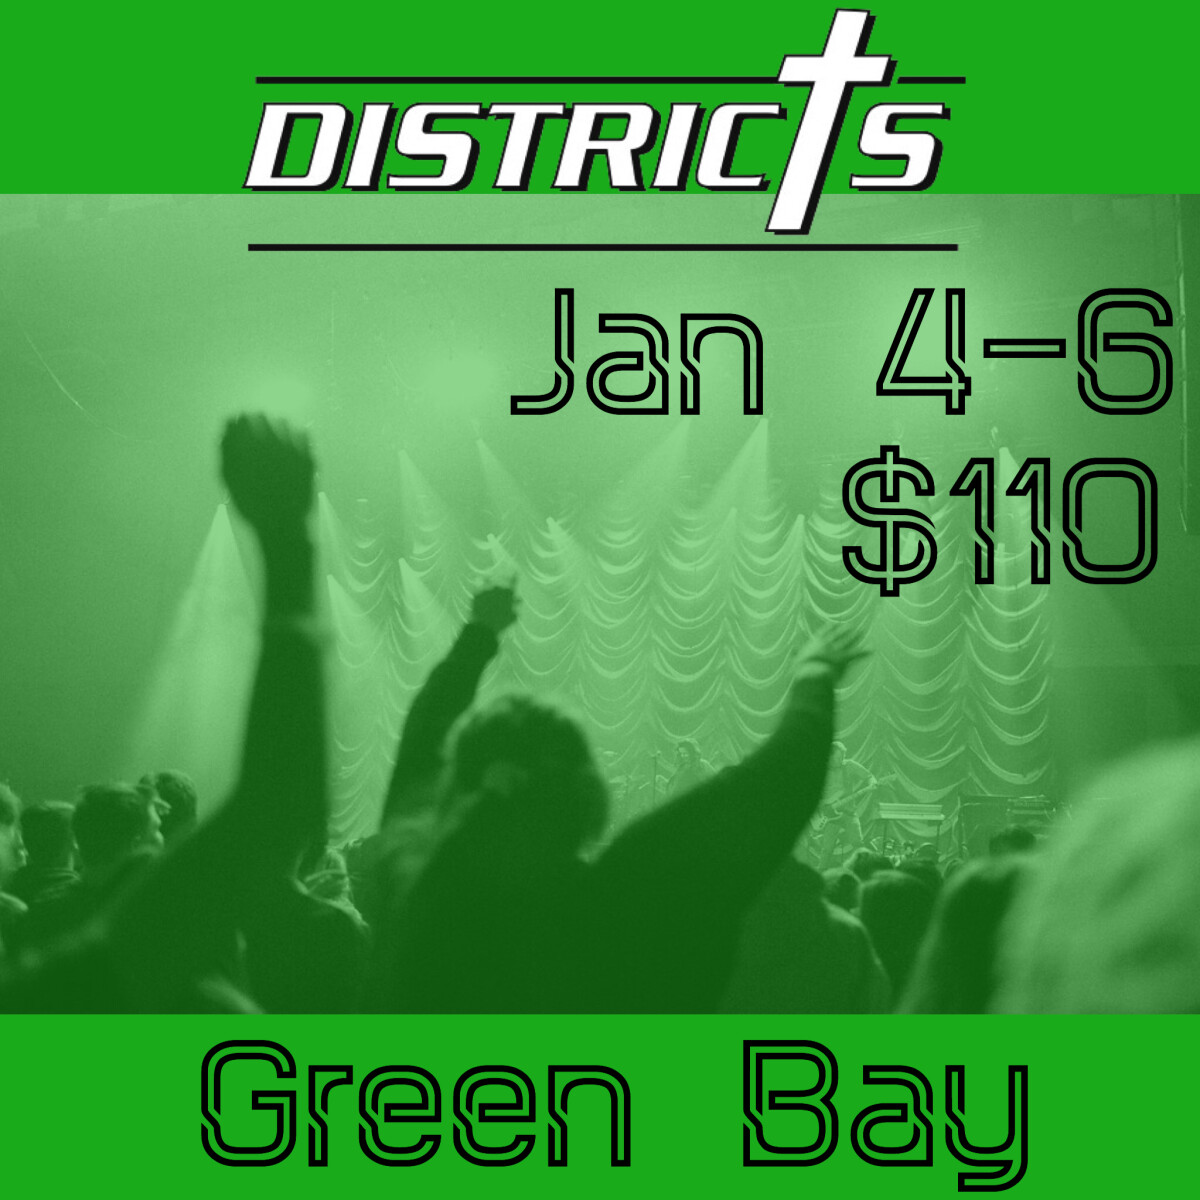 High School District Conference - Green Bay